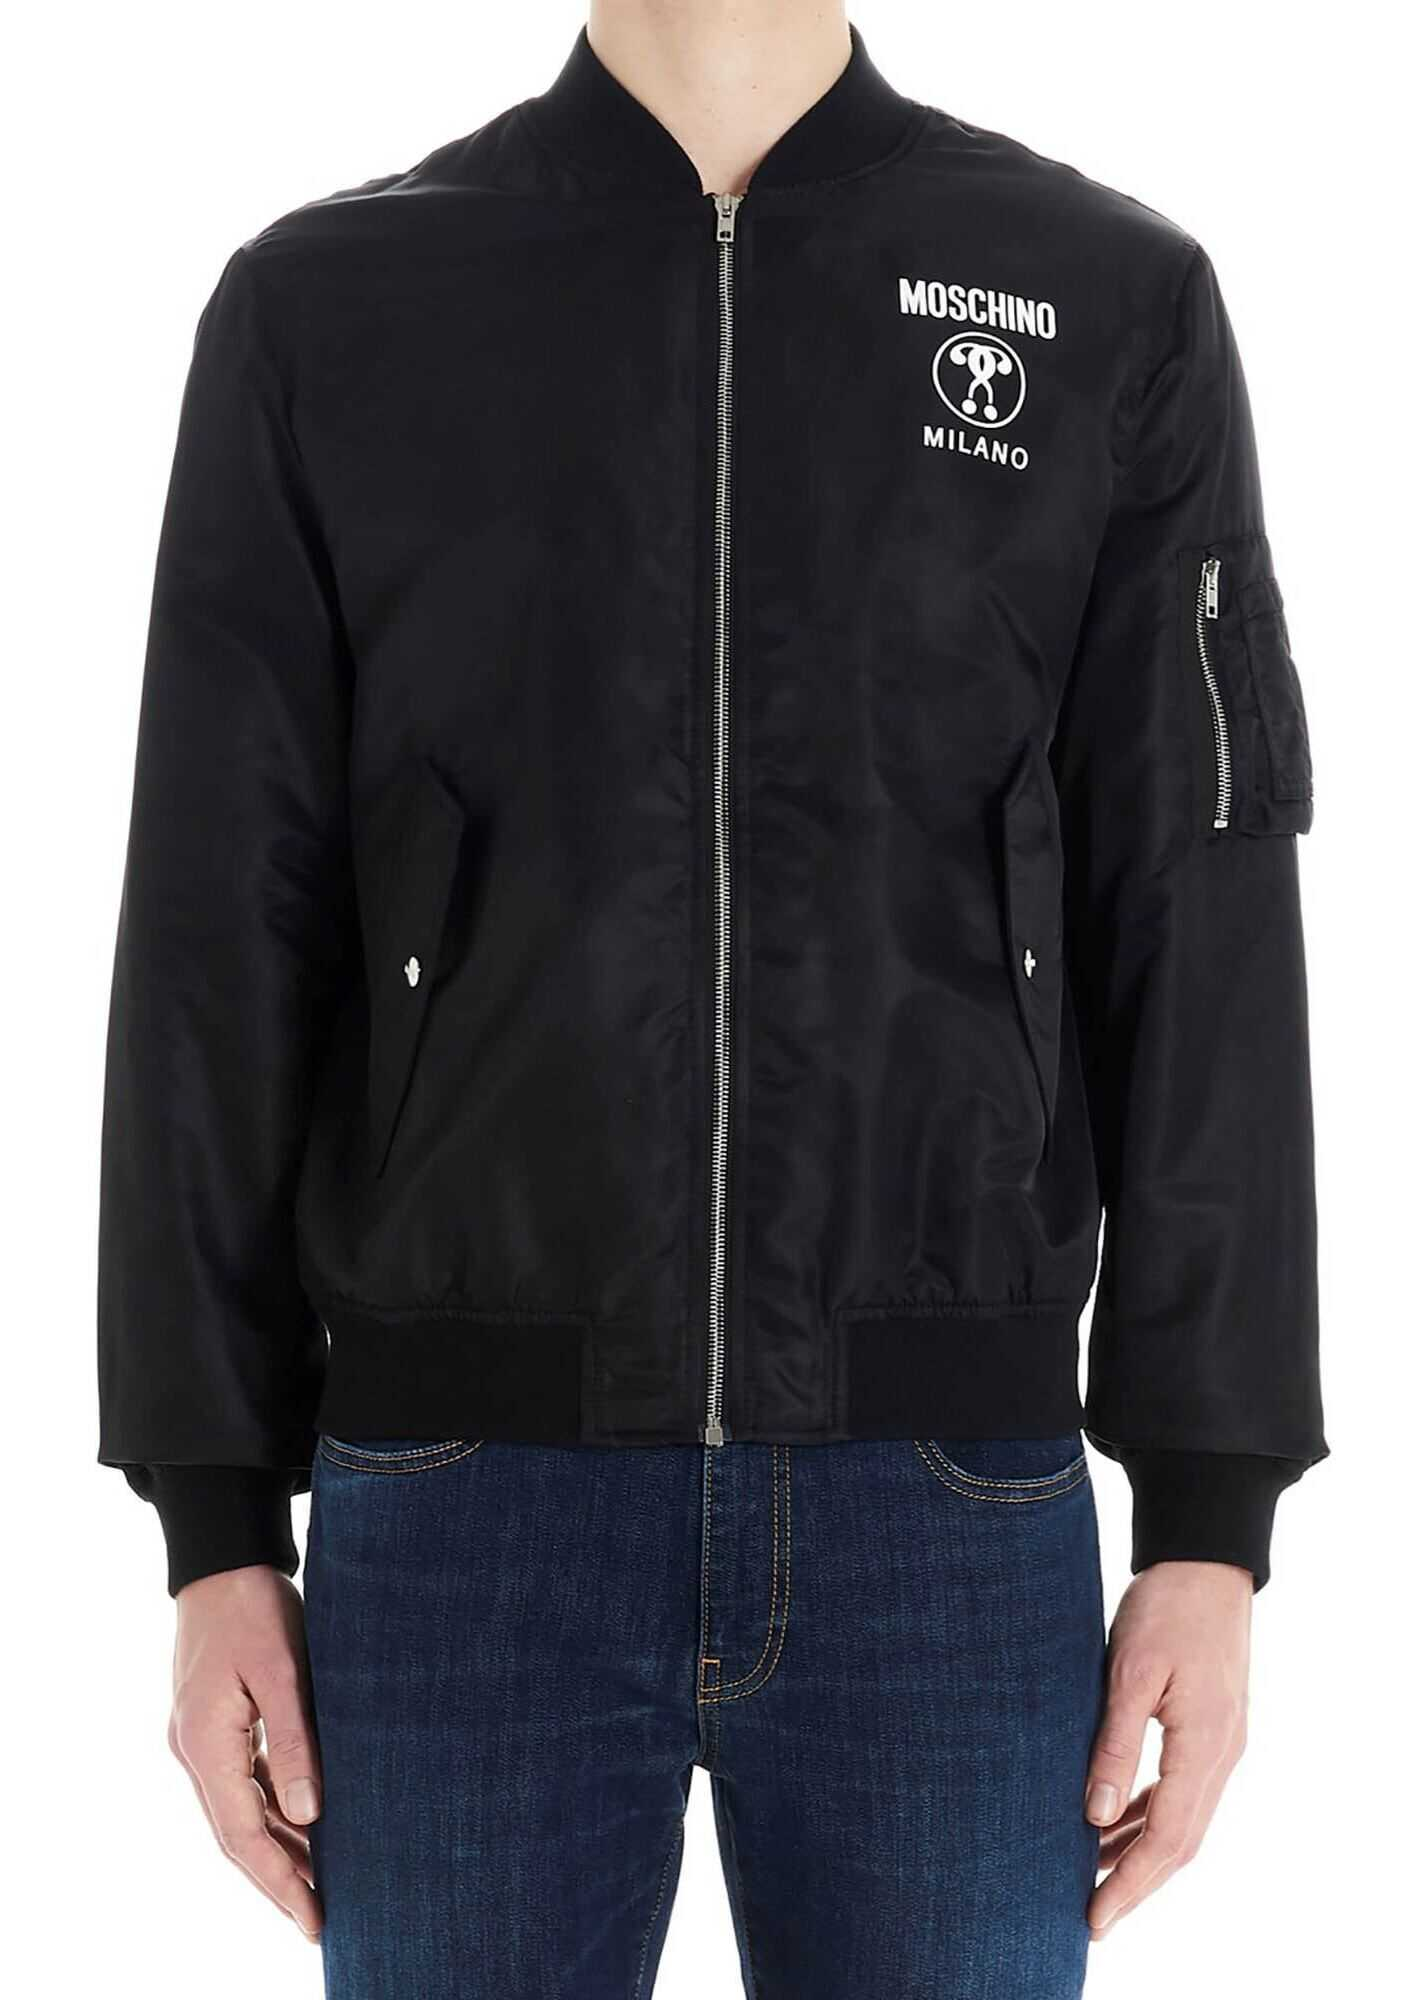 Moschino Double Question Mark Bomber Jacket In Black Black imagine